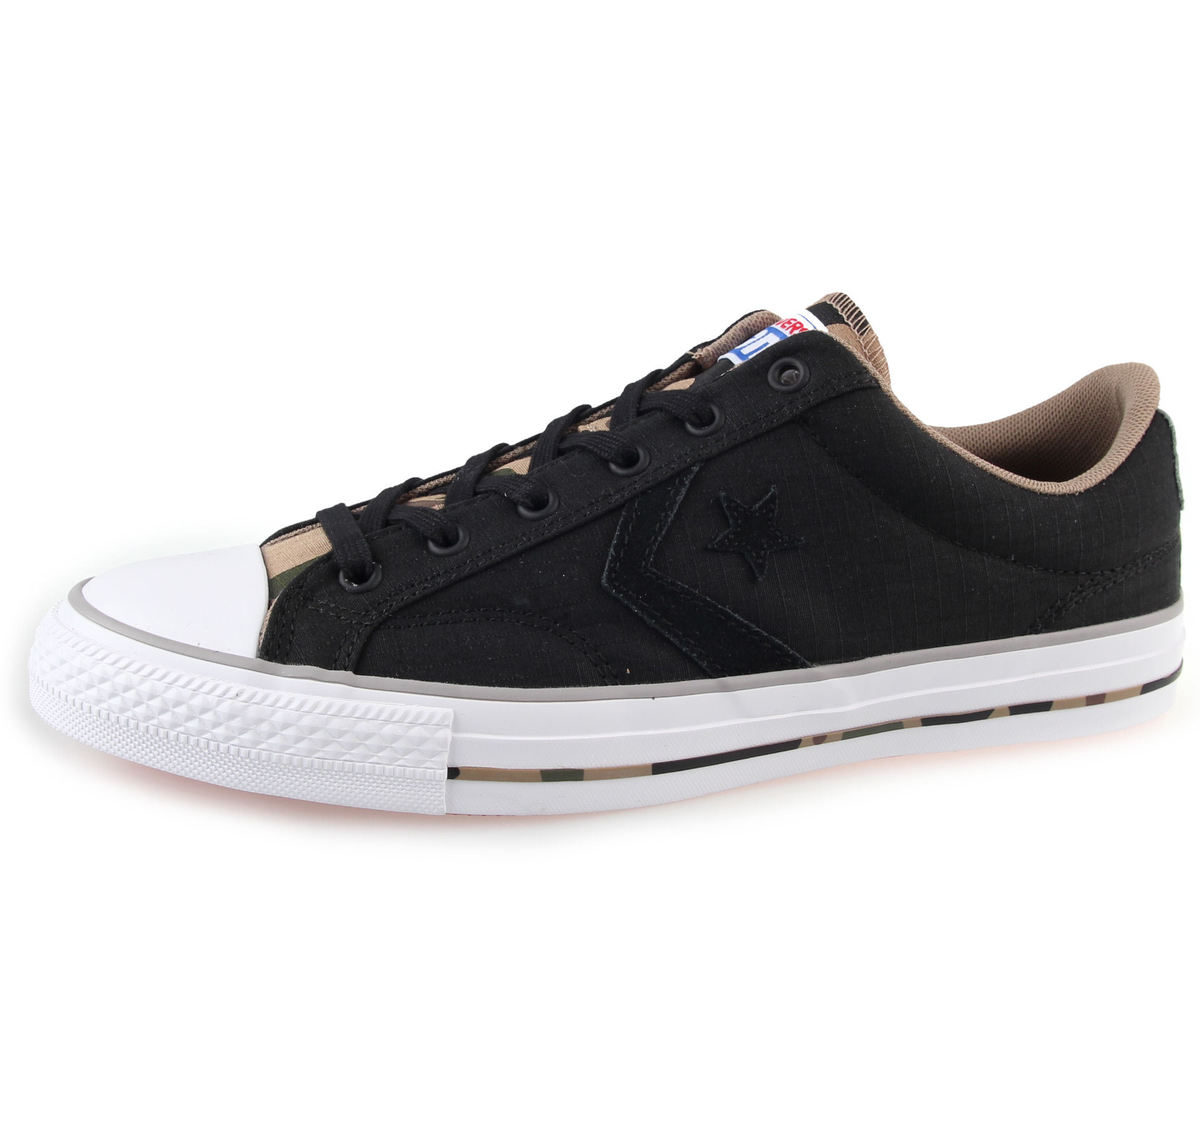 boty CONVERSE - Star Player - Blk/Sandy - C151304